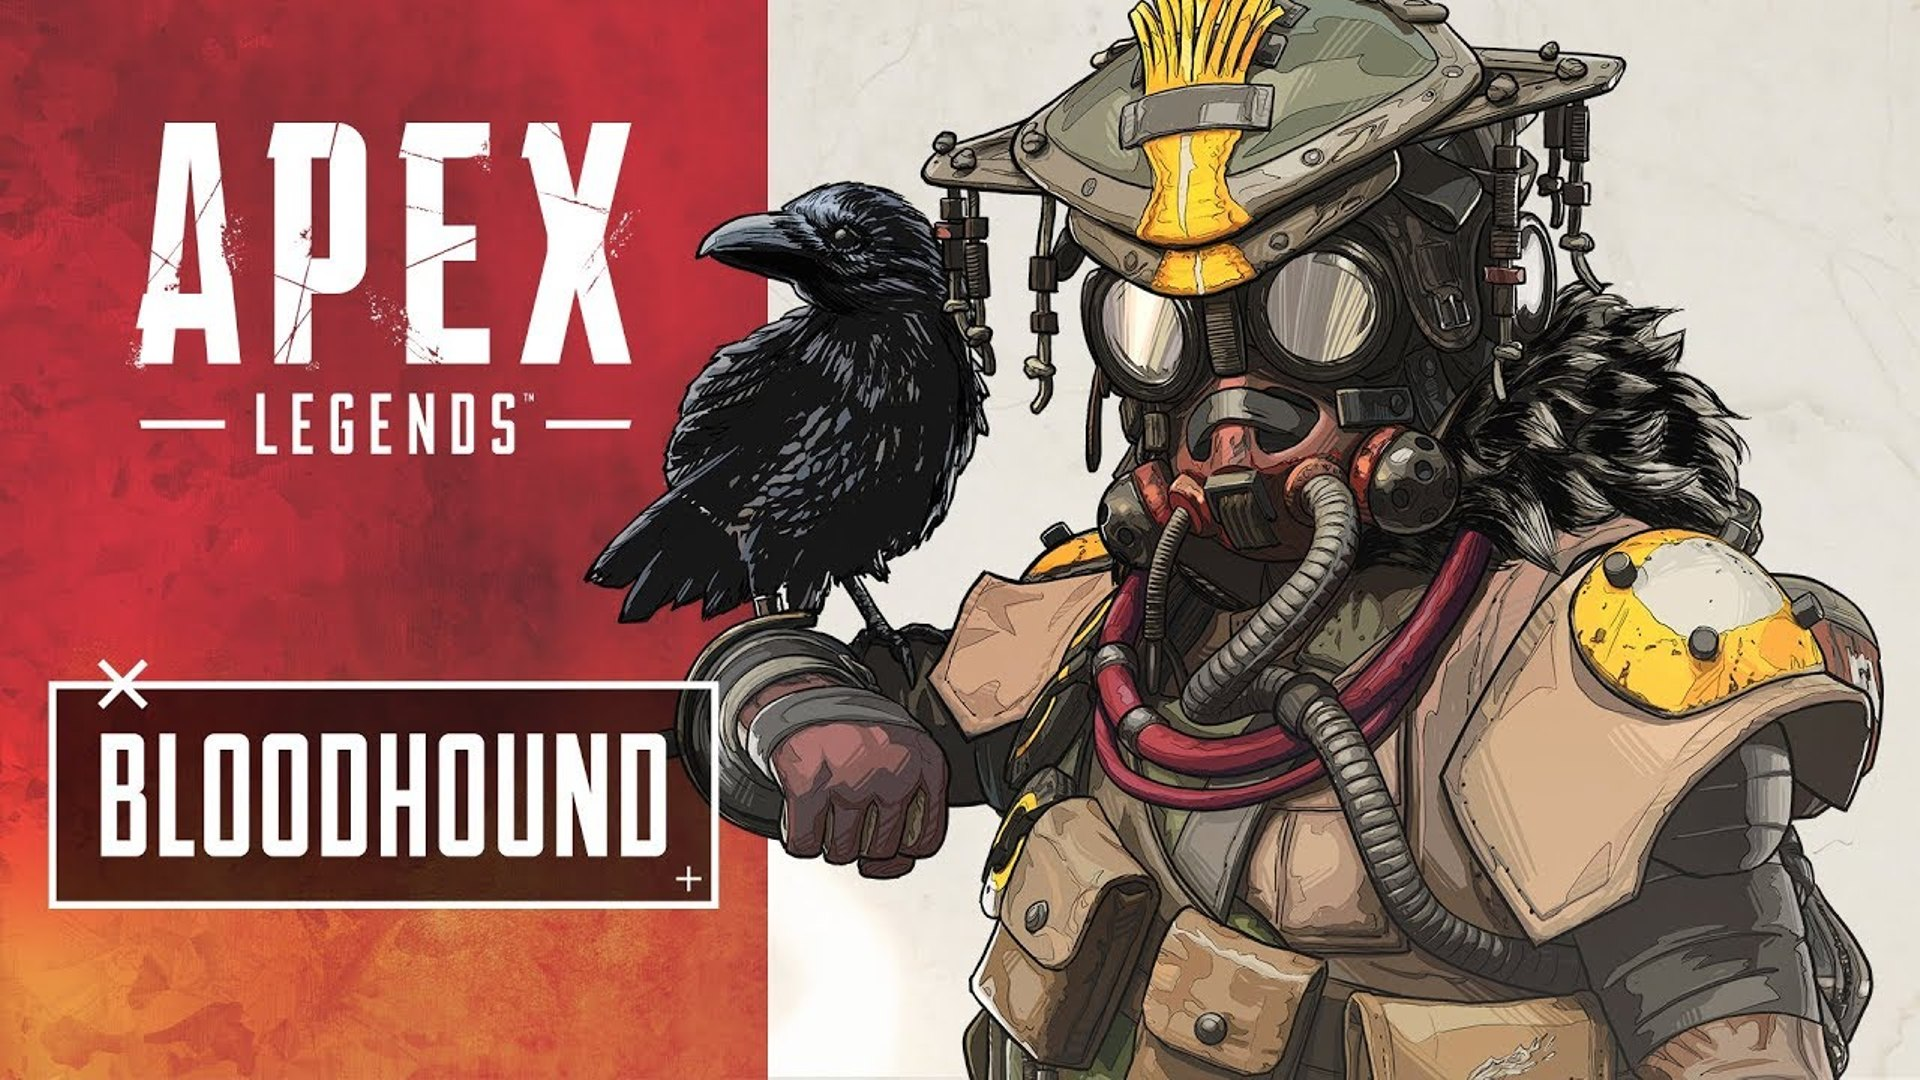 Bloodhound Apex Legends Best Wallpapers Supertab Themes